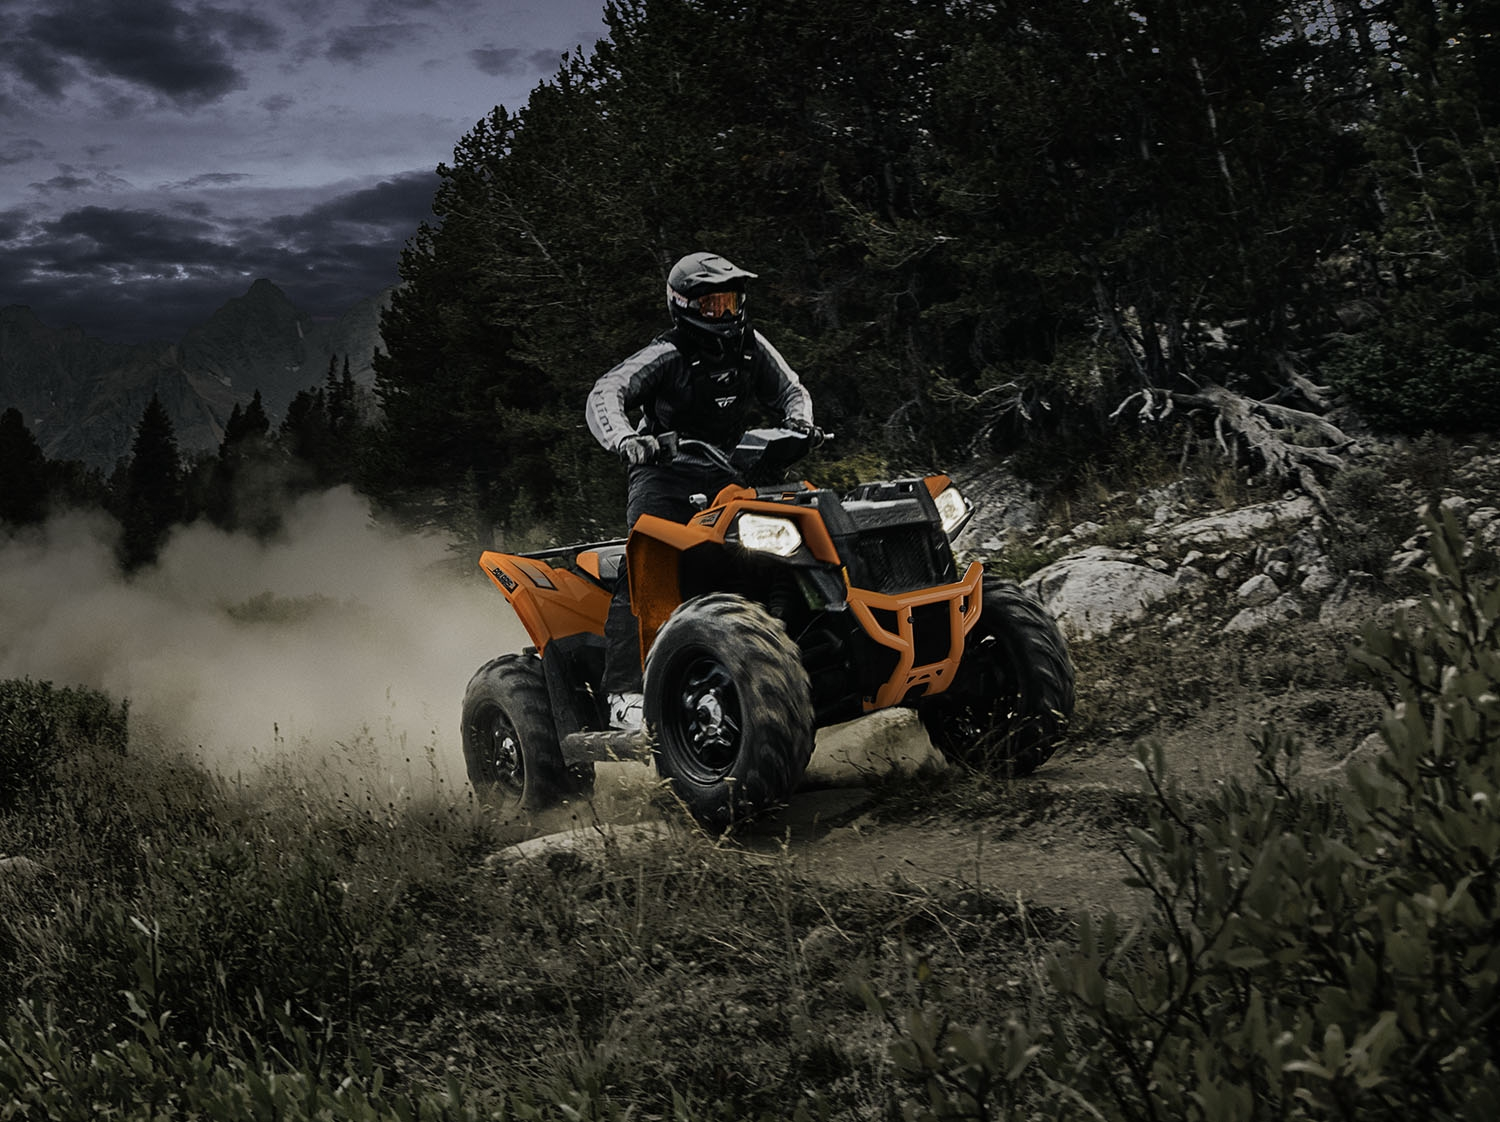 2020-scrambler-850-orange-madness_4